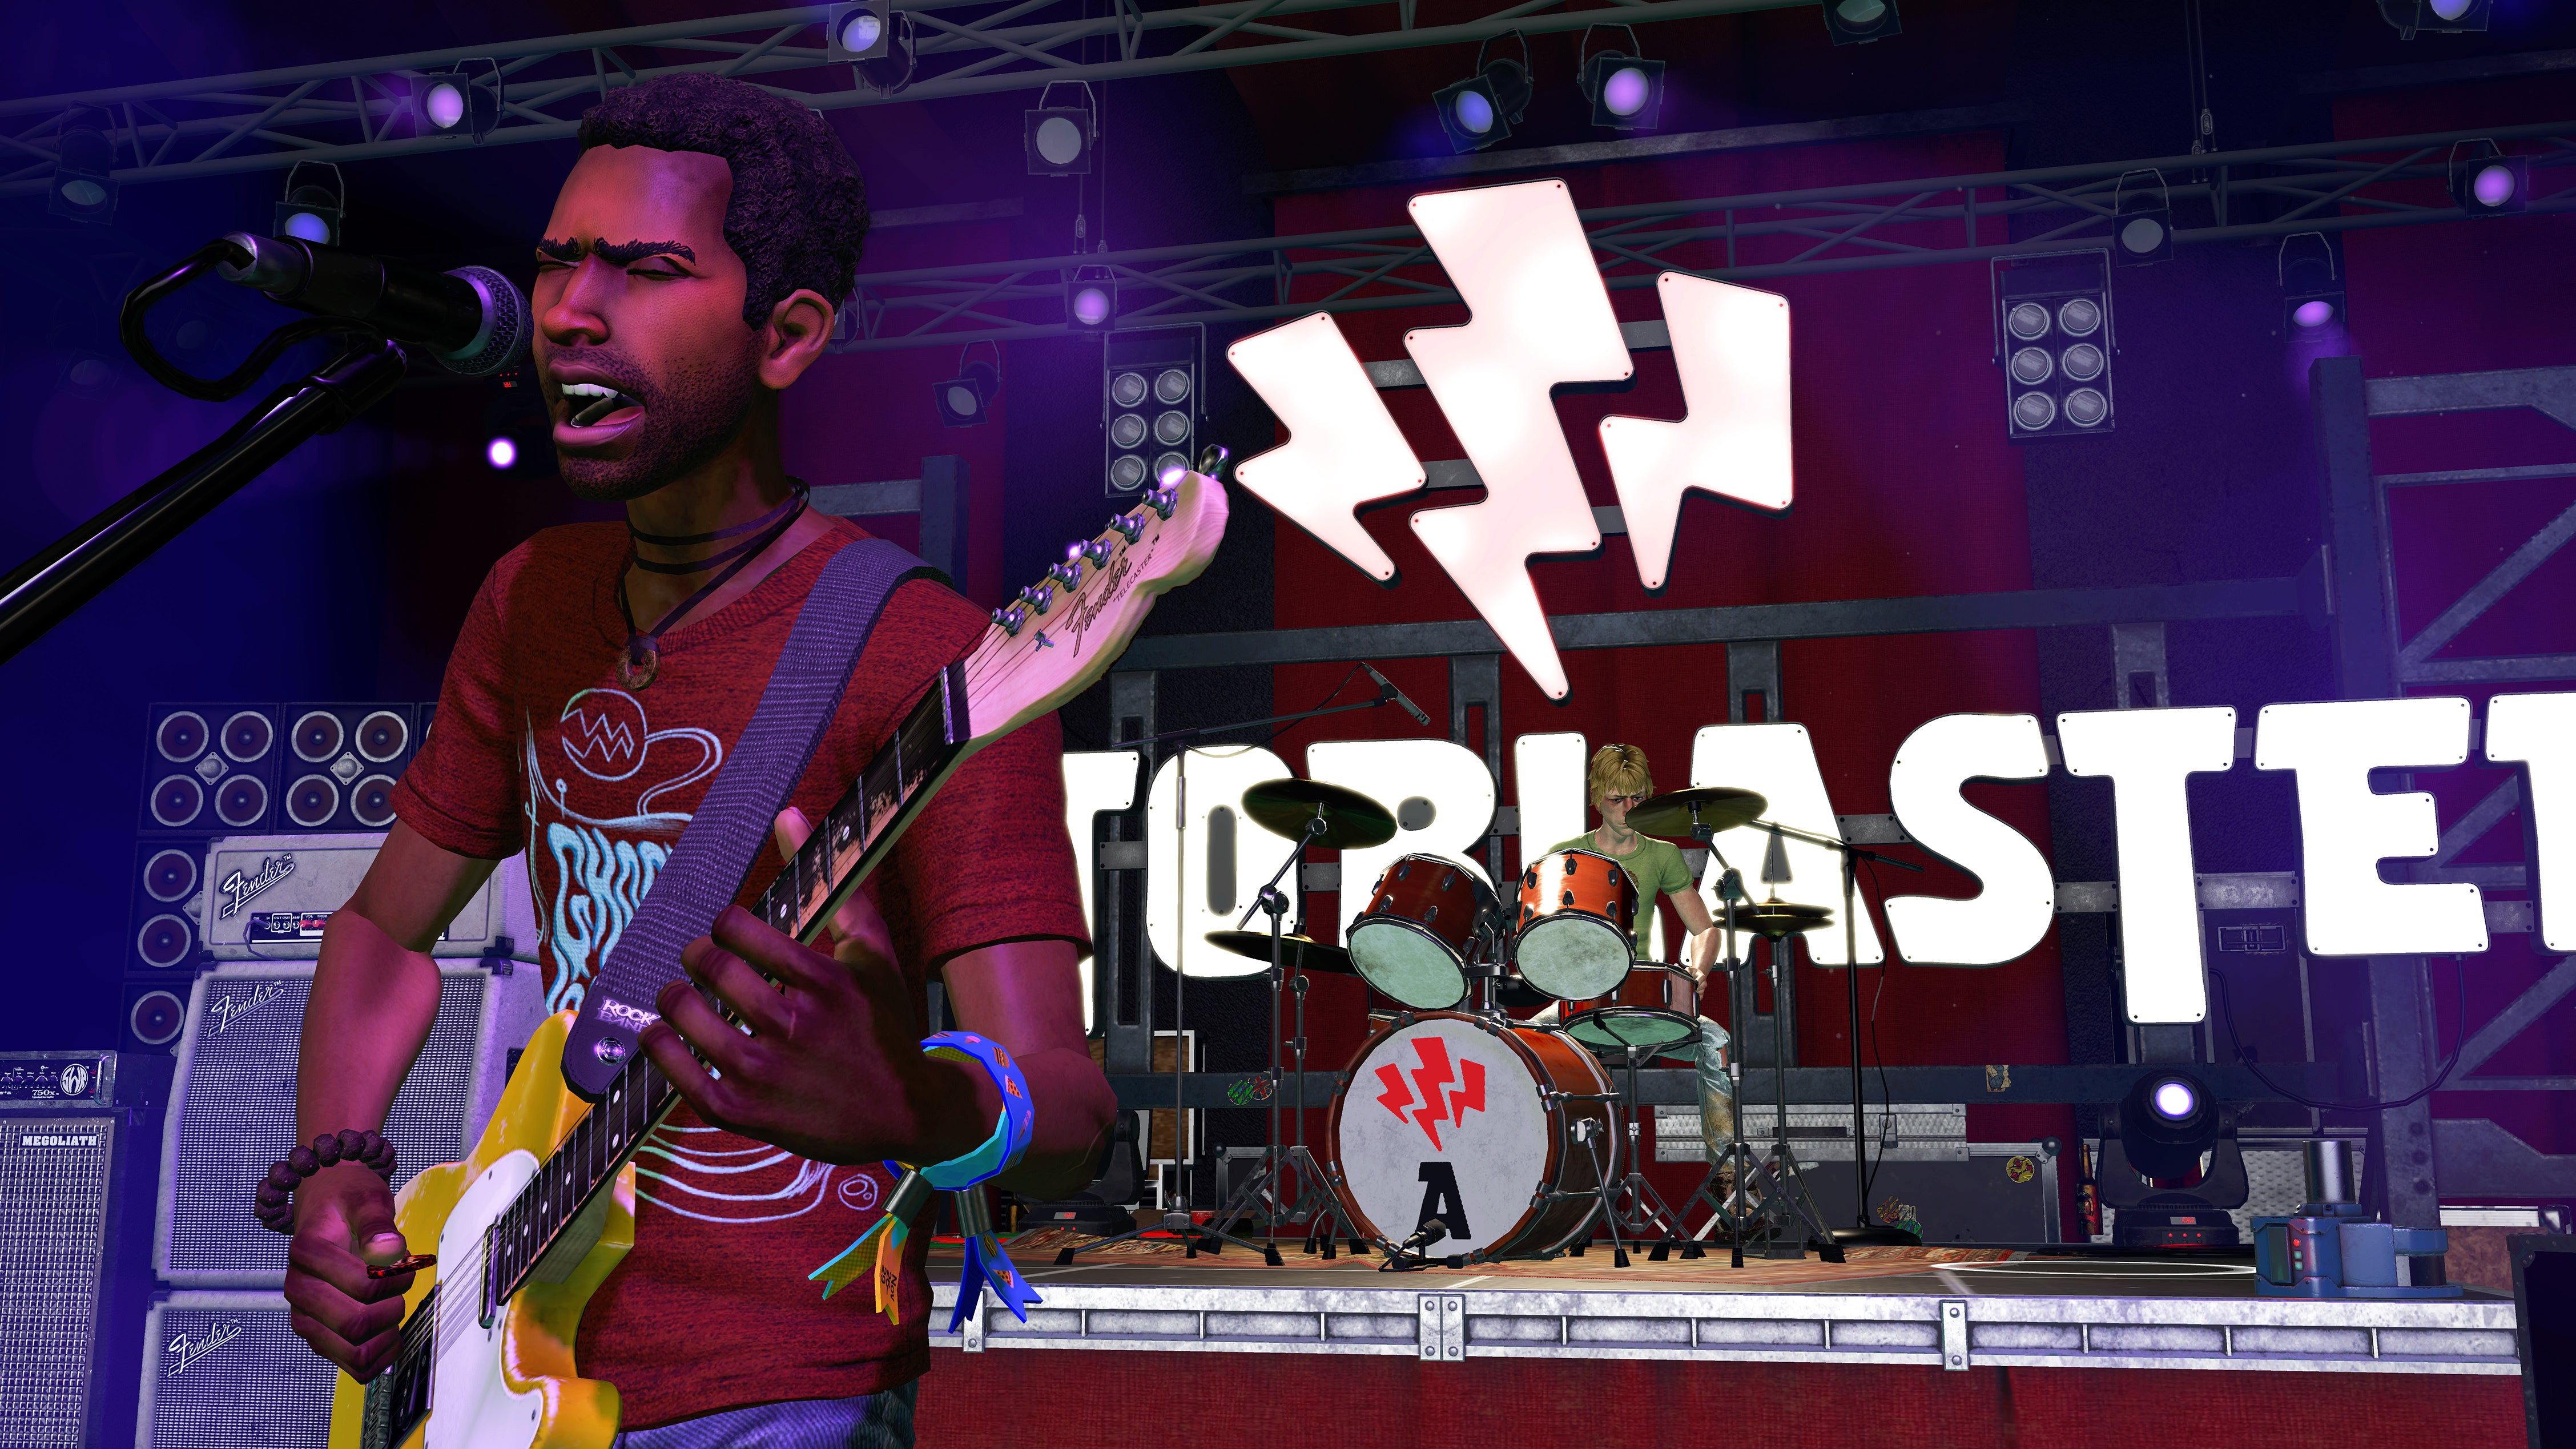 Rock Band VR review: Rock Band's roaring PC debut showcases